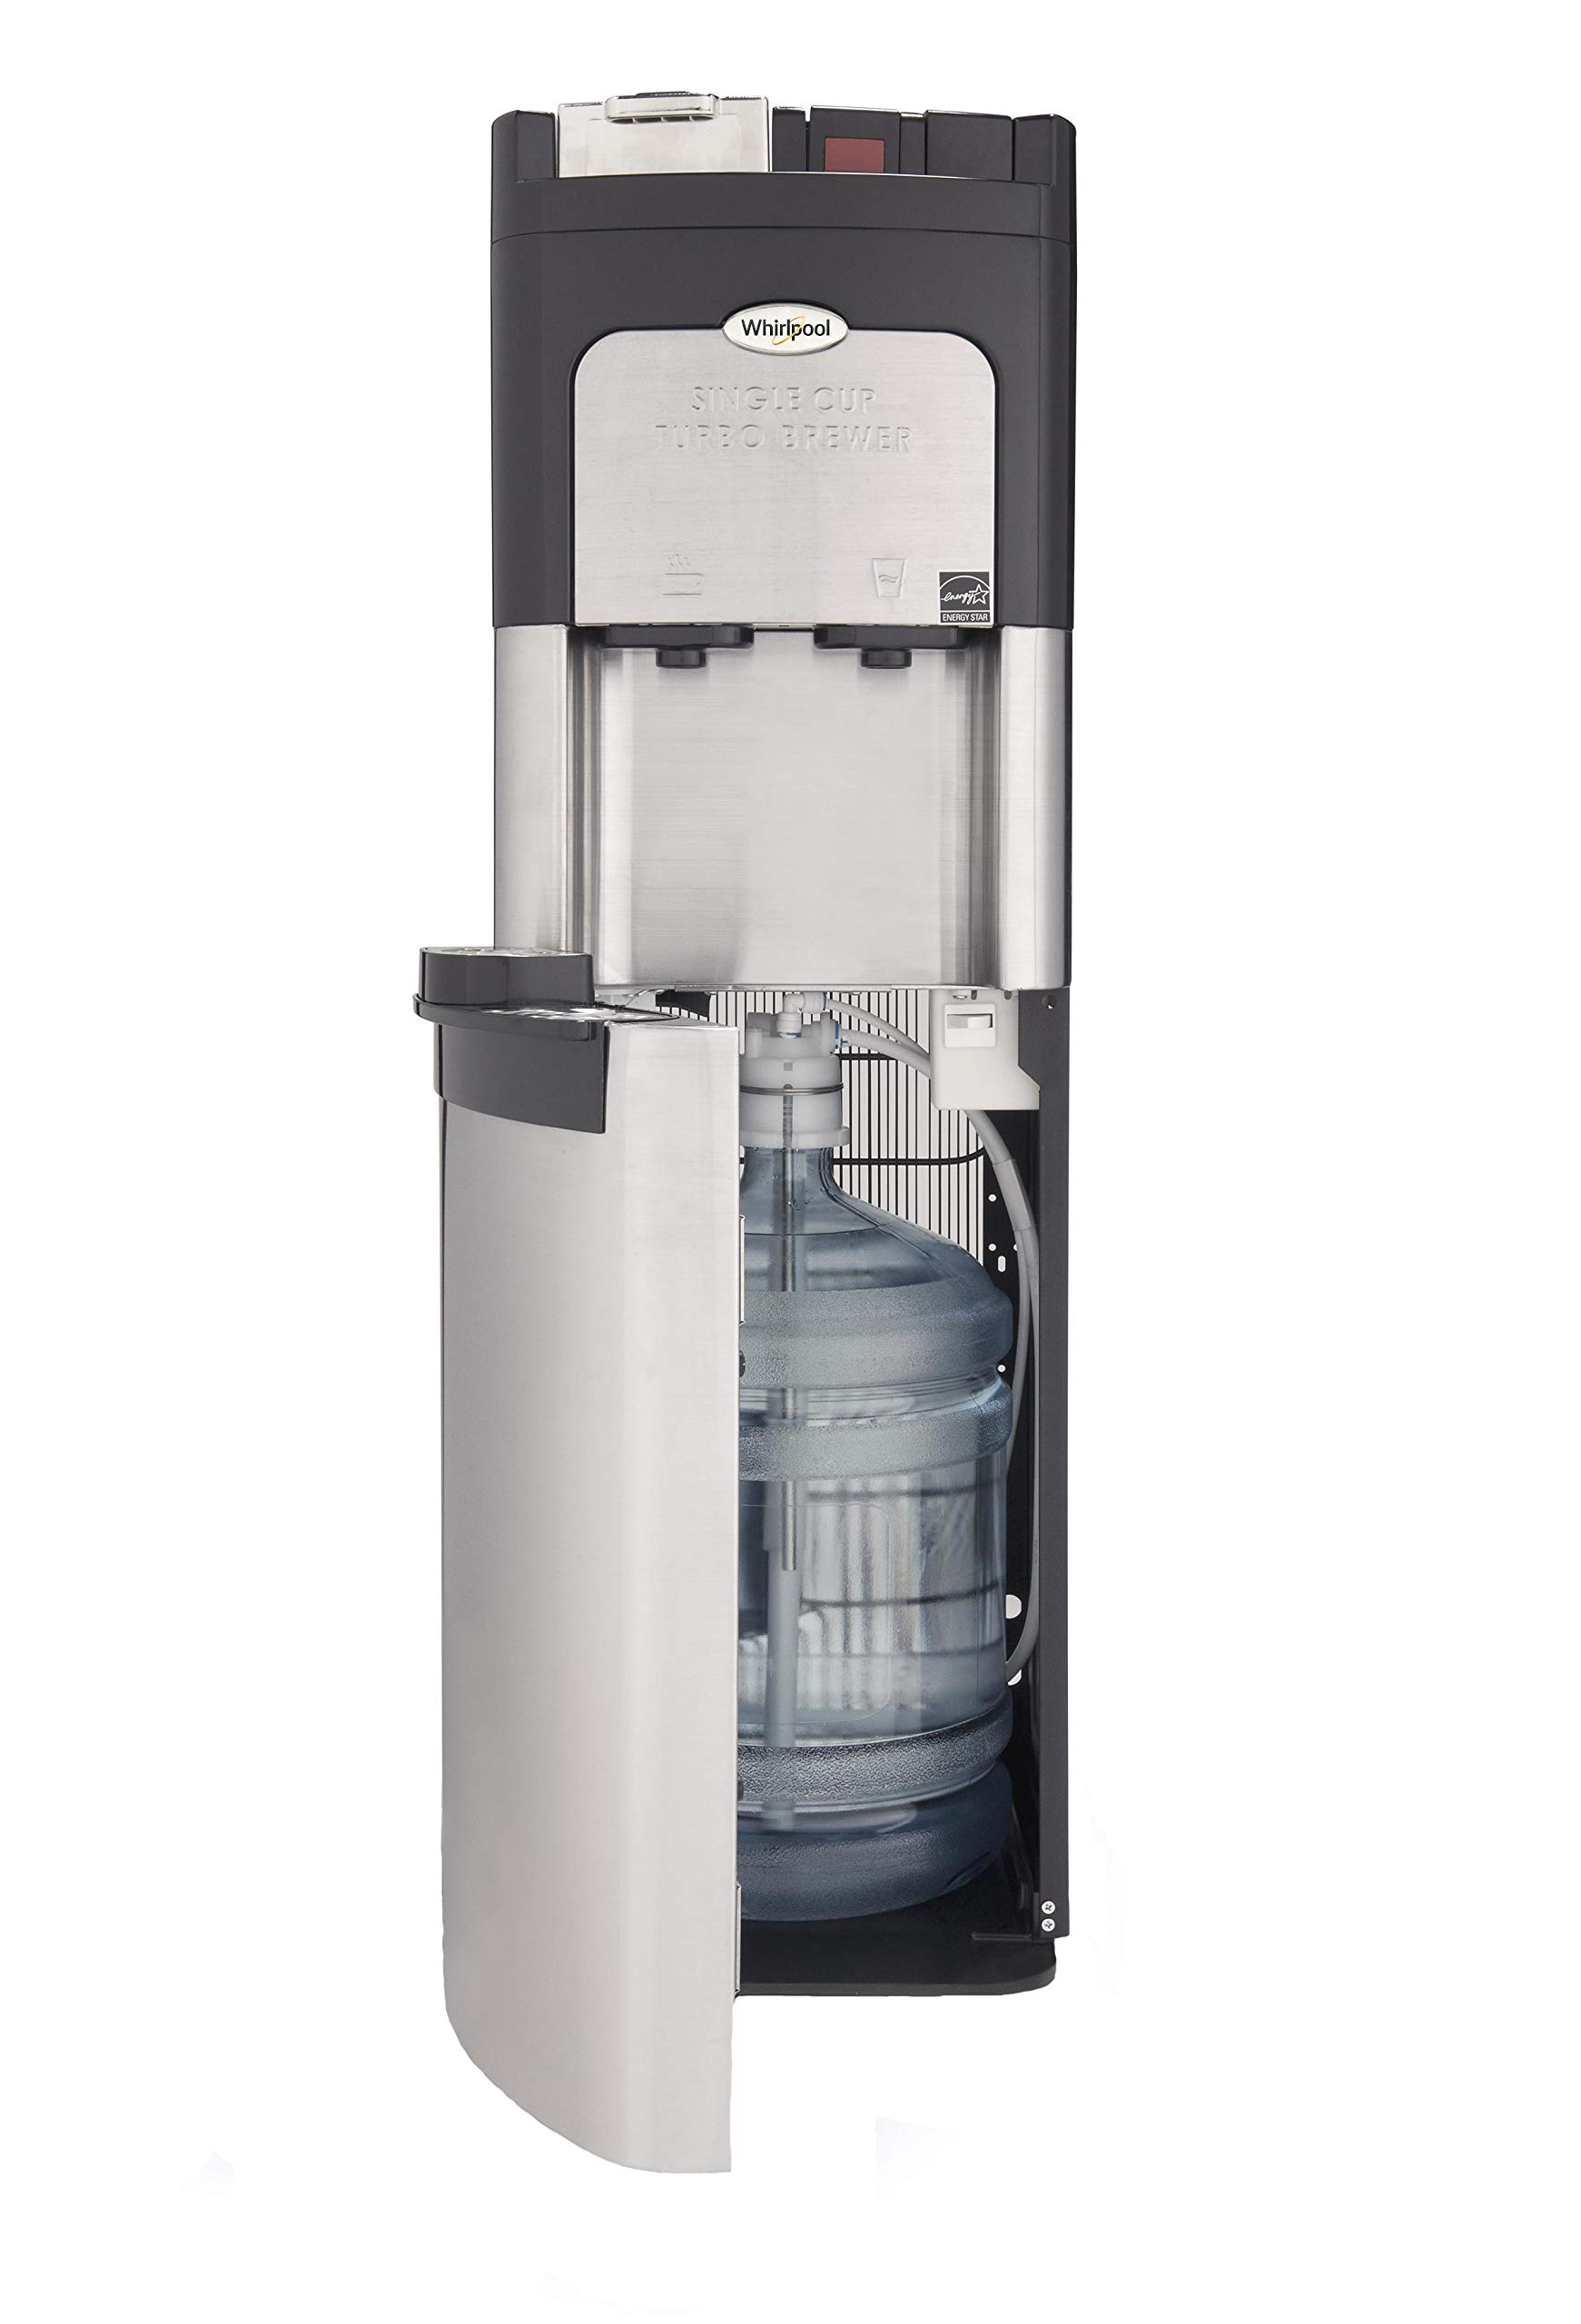 Whirlpool 8LCHKKSCSSS5HW Water Cooler, Stainless Steel, Stainless Steel